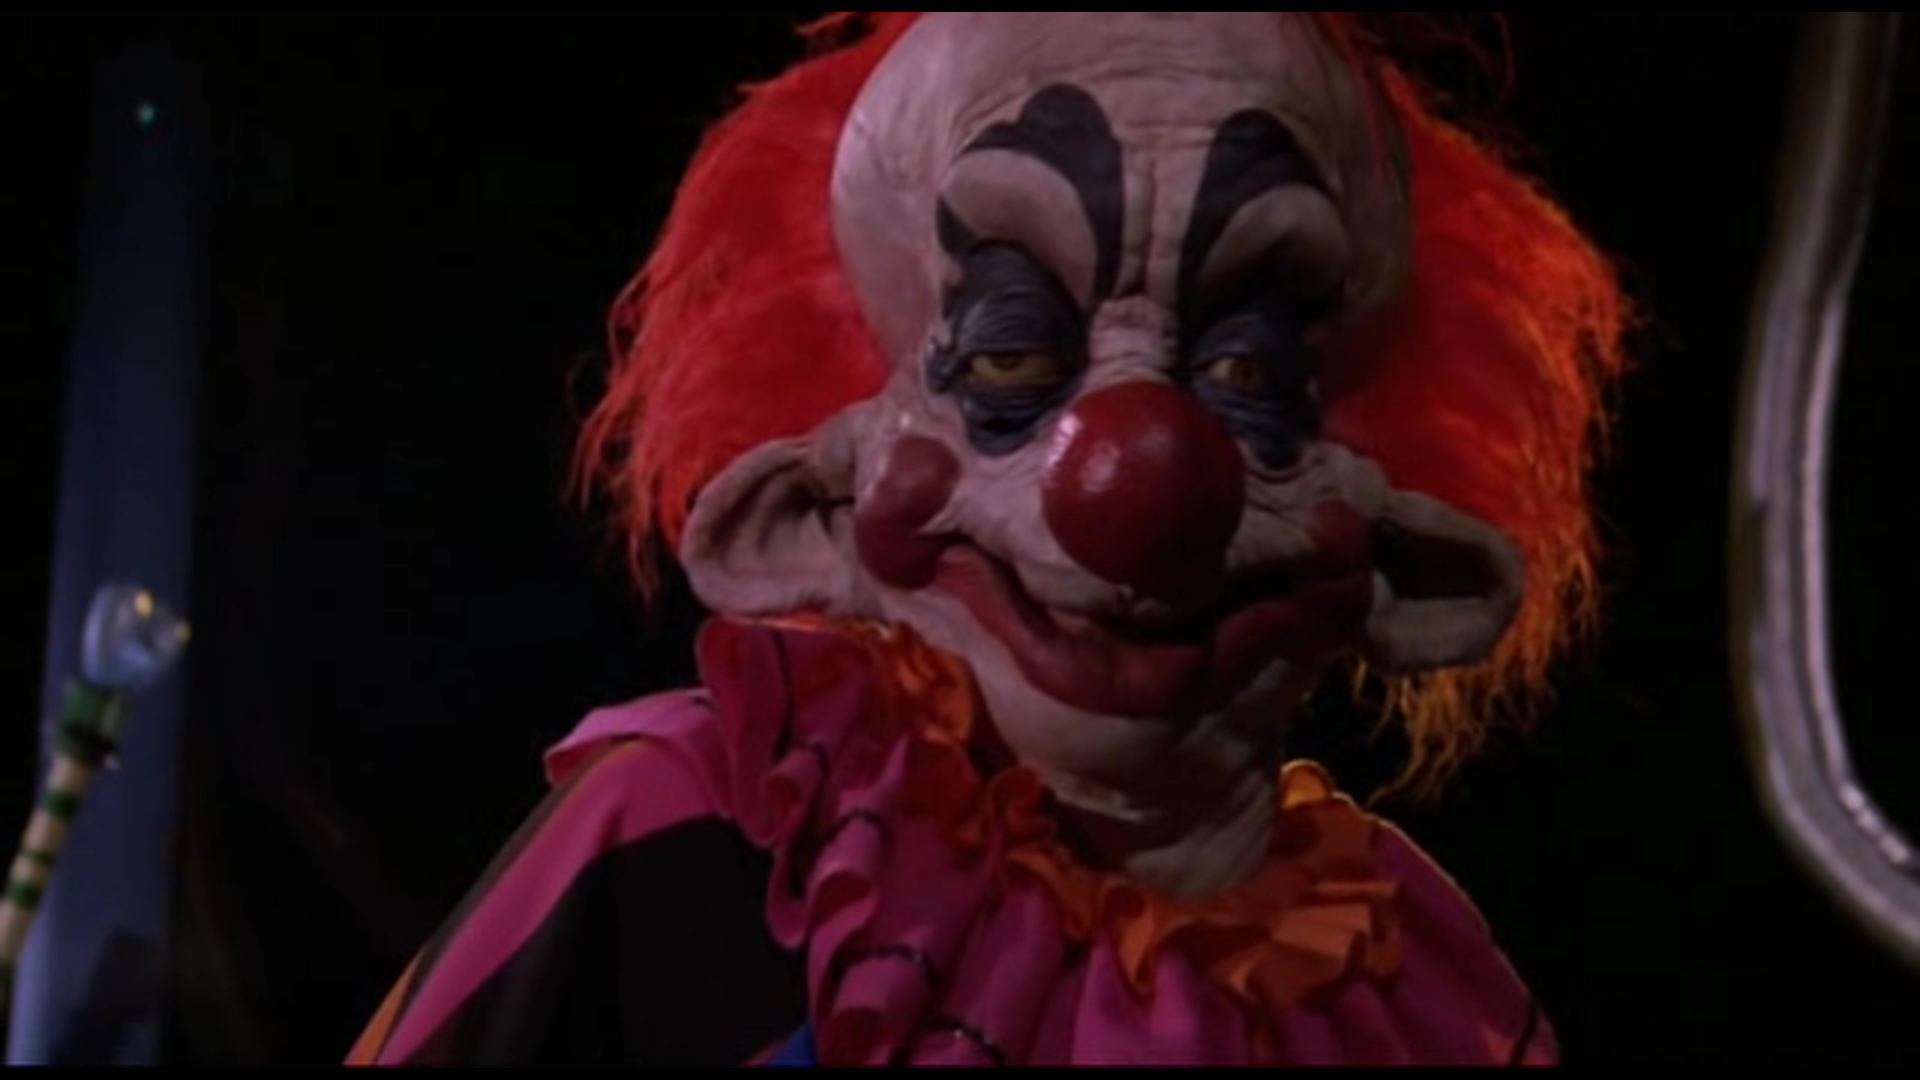 Rudy_(Killer_Klowns).png